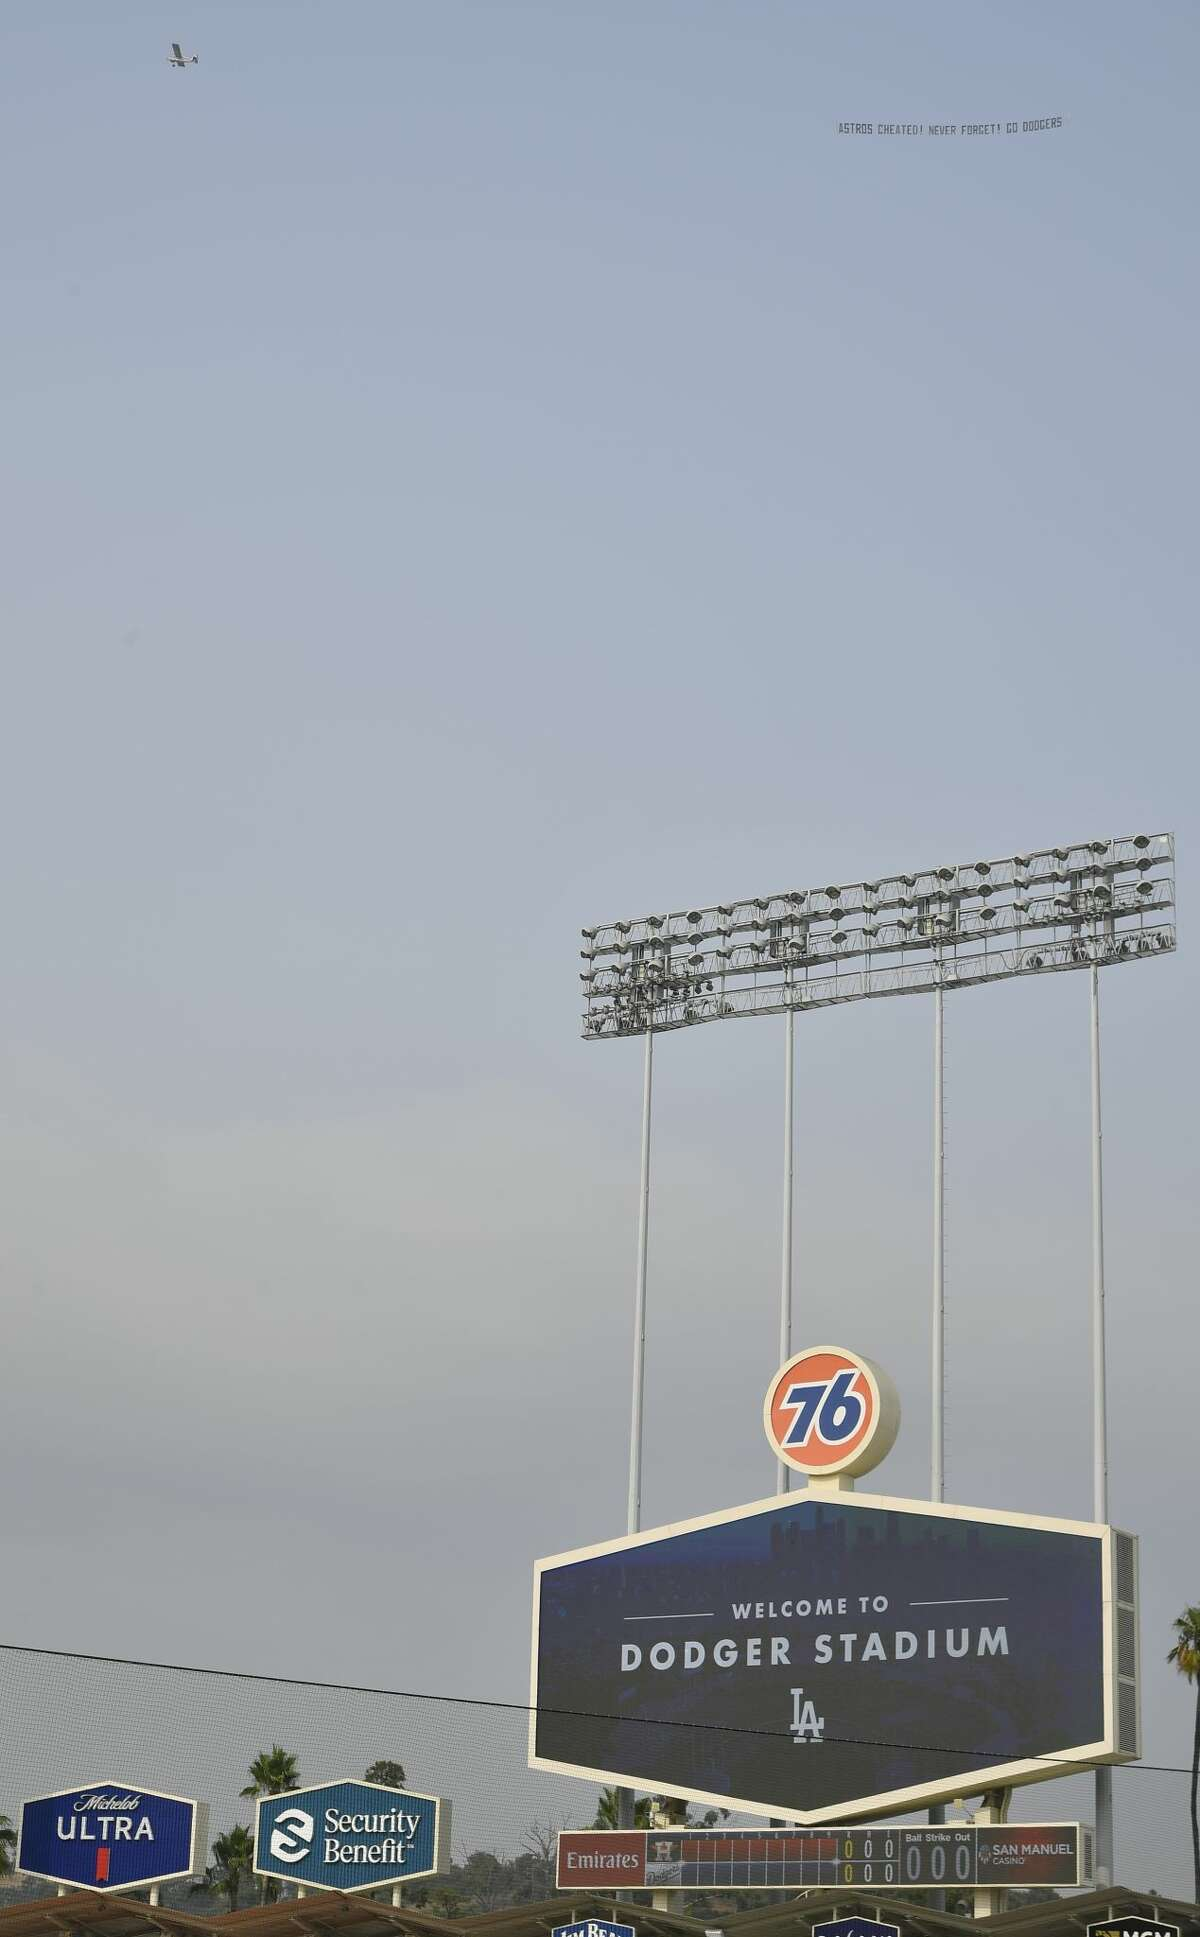 LOS ANGELES, CA - SEPTEMBER 13: A small aircraft towing a banner flies over Dodger Stadium while the Houston Astros take batting practice before playing the Los Angeles Dodgers at Dodger Stadium on September 13, 2020 in Los Angeles, California. (Photo by John McCoy/Getty Images)